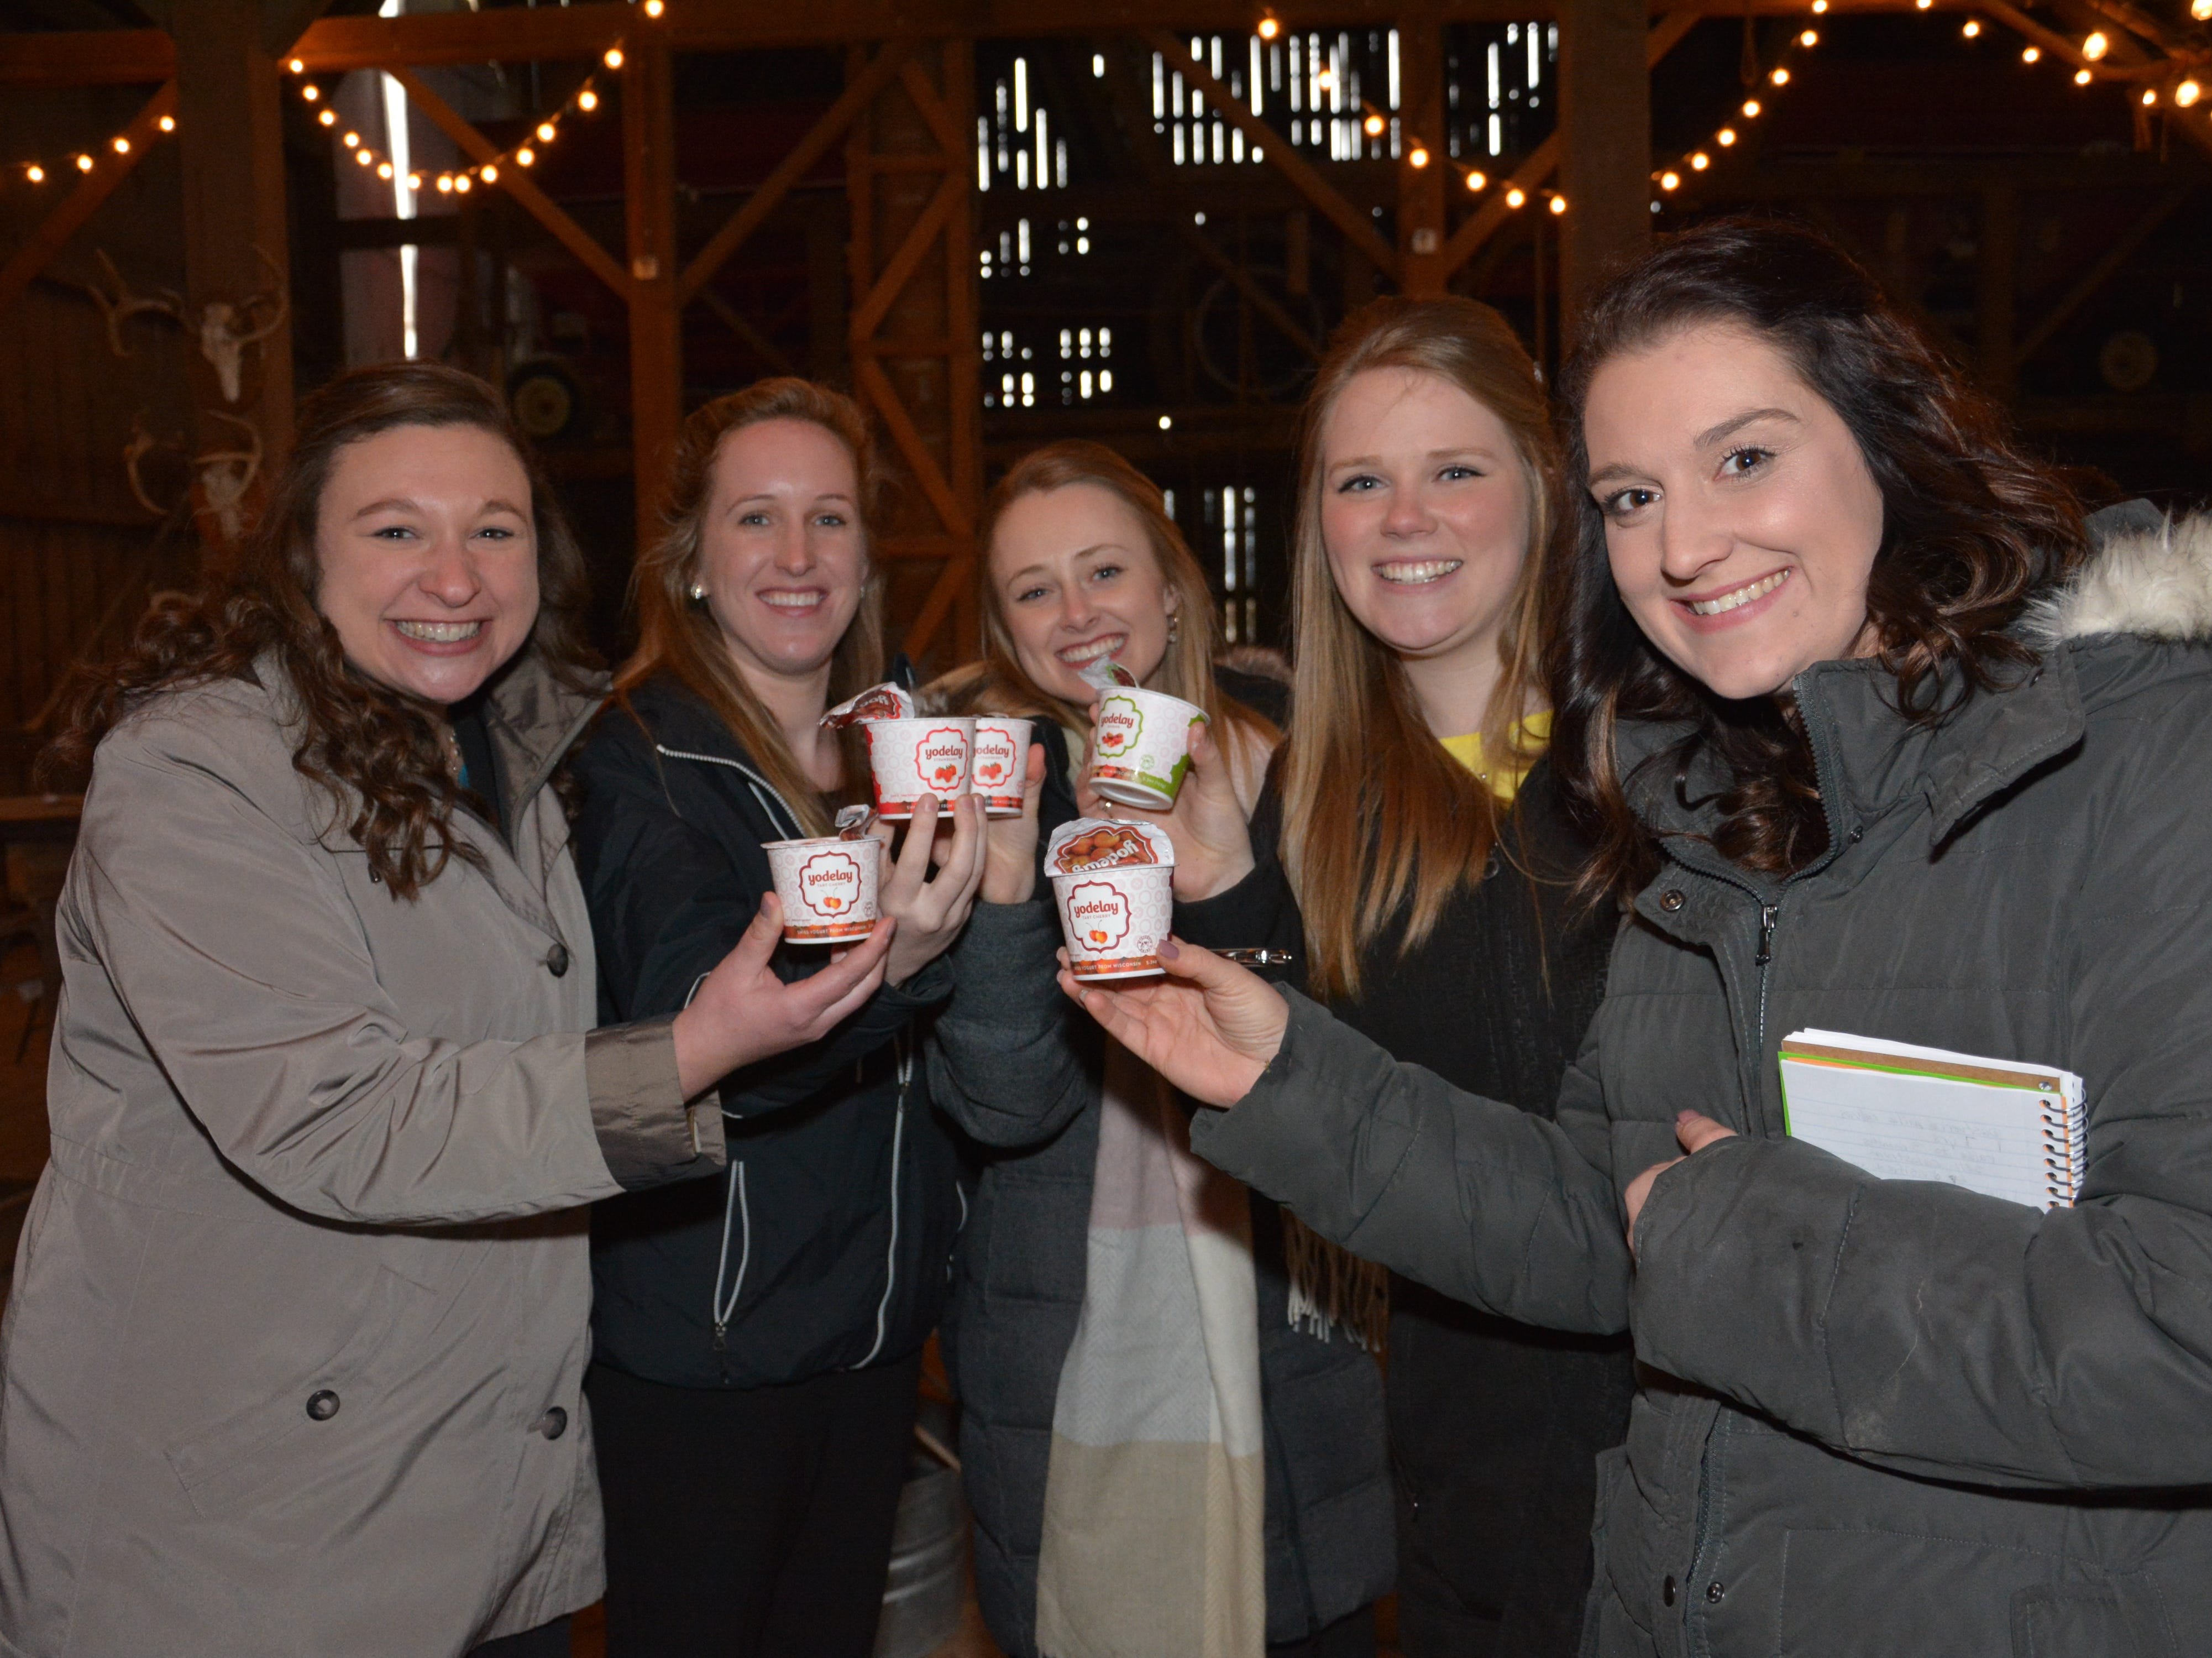 Alice in Dairyland contestants hold up containers of Yodelay Swiss-style yogurt that is made with the milk from the Voegeli family's Brown Swiss cows.